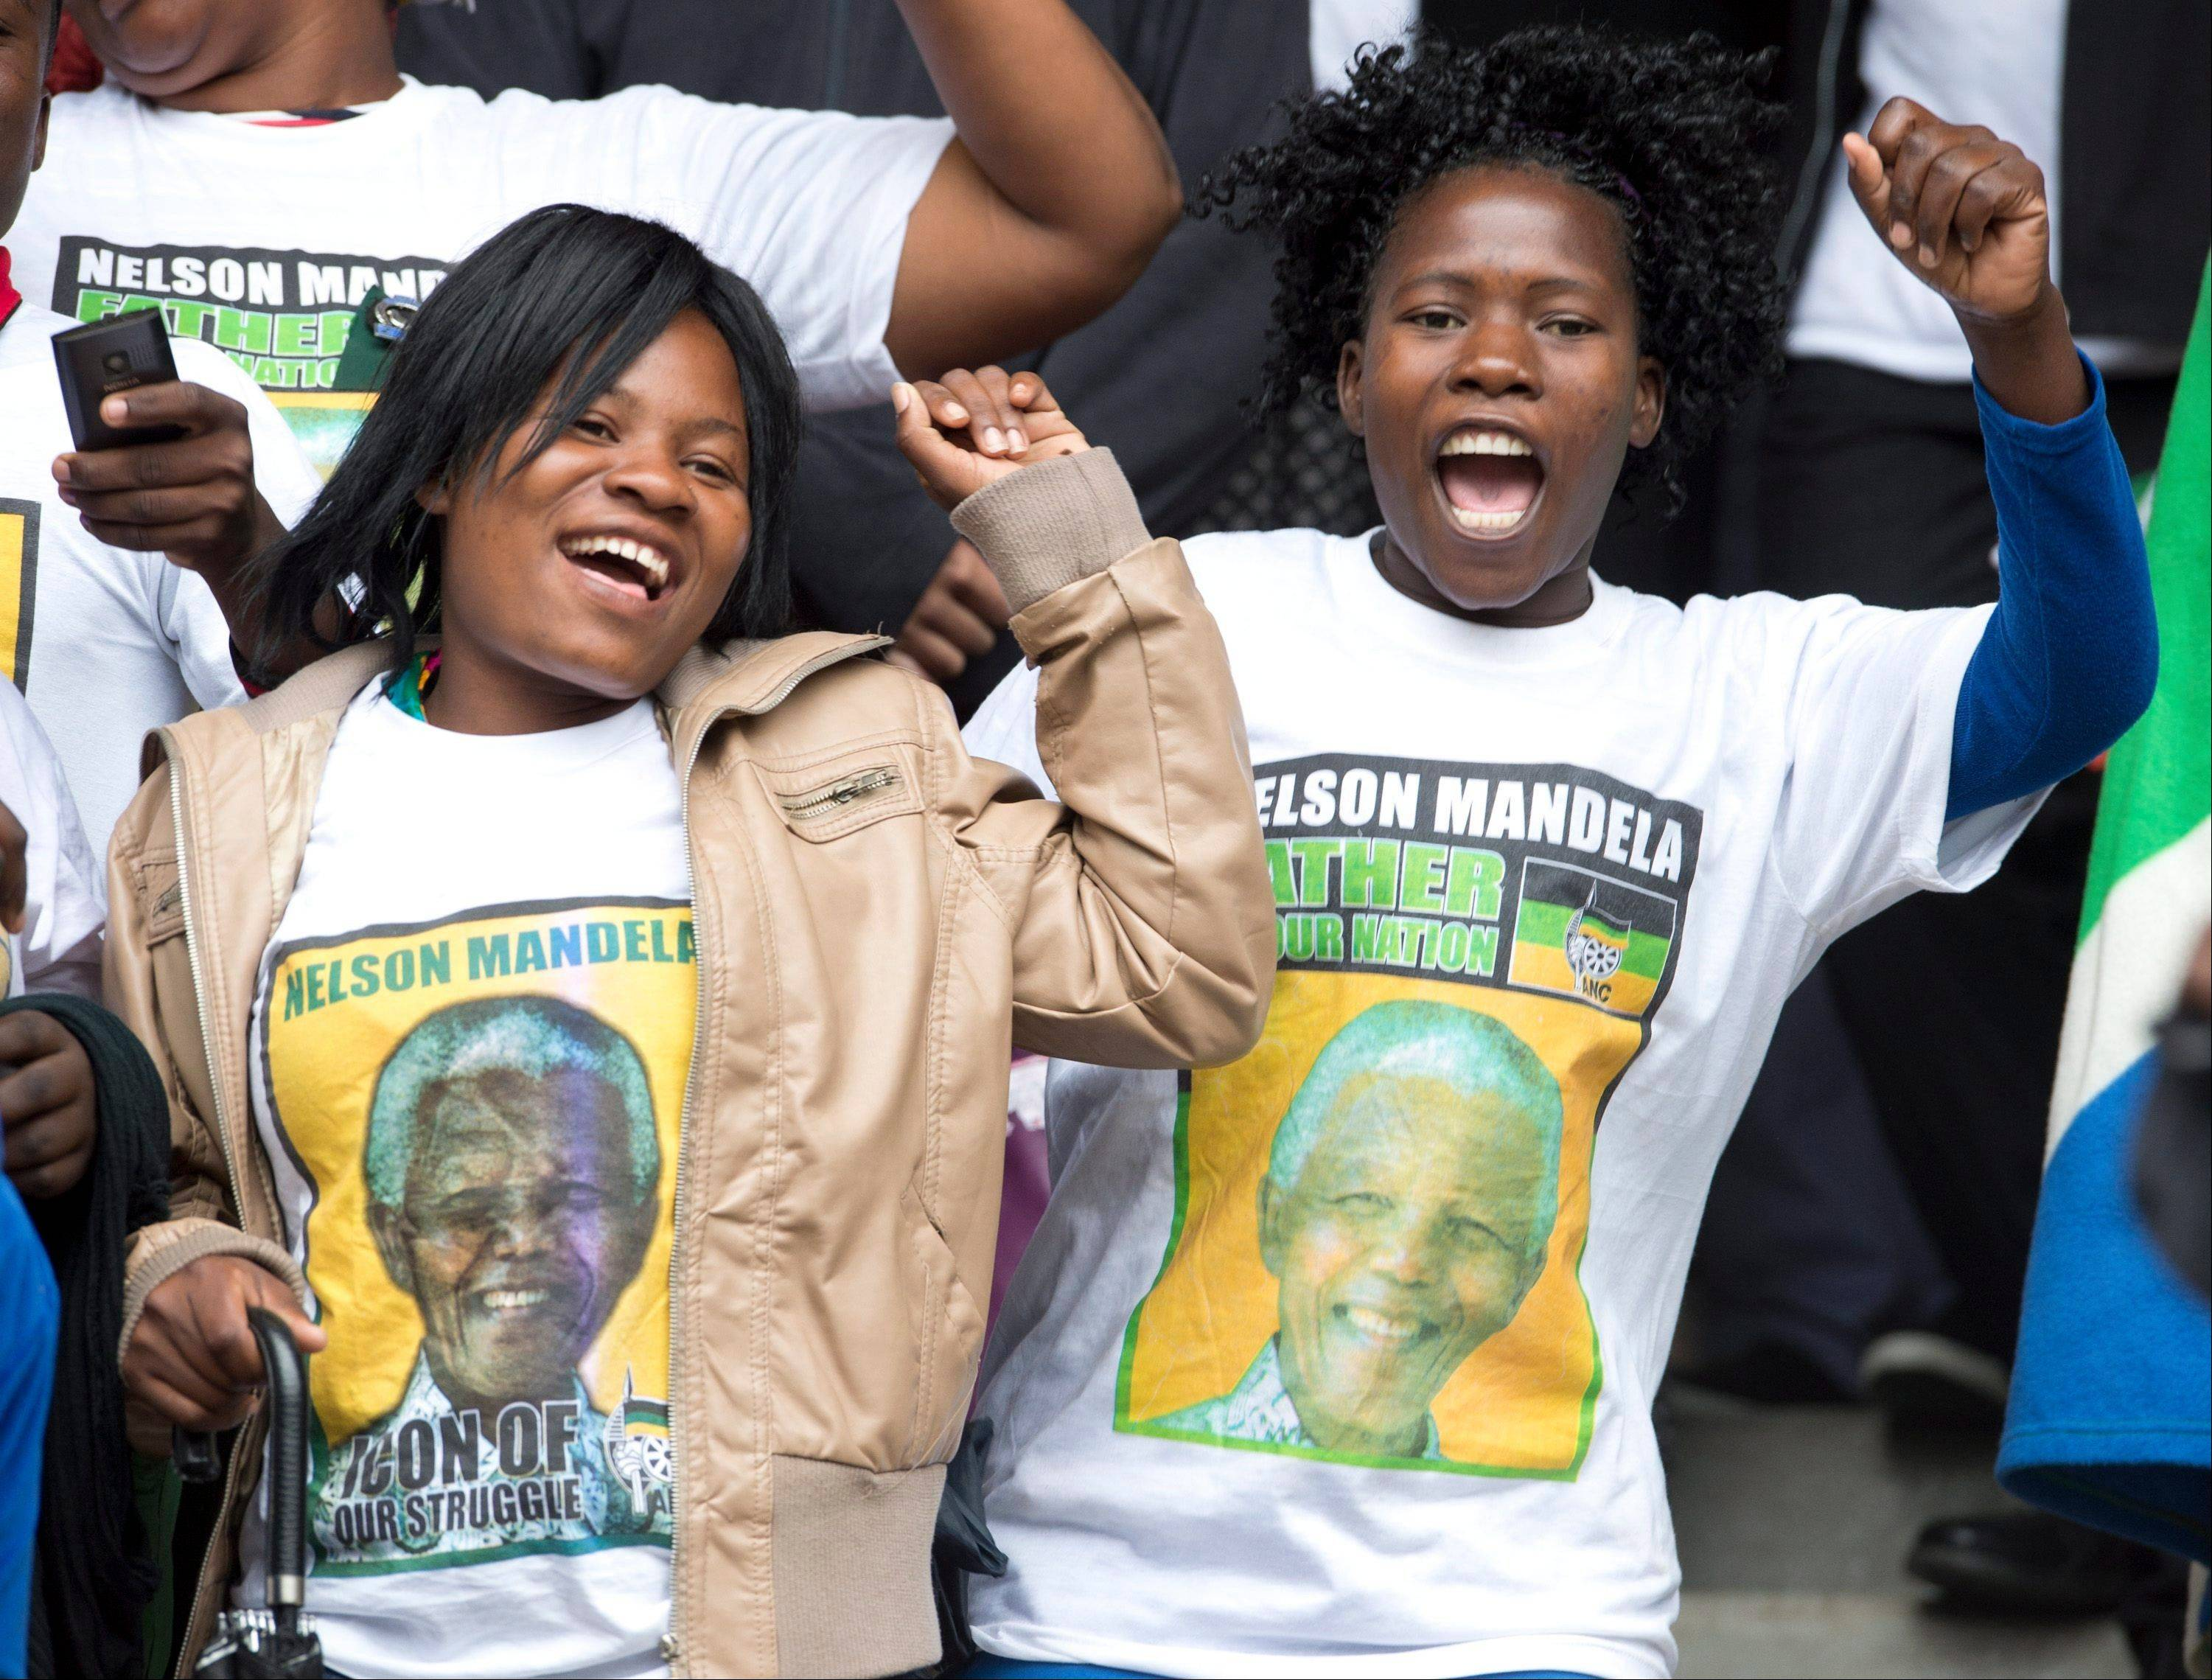 Women sing in the audience during the memorial service for Nelson Mandela Tuesday Dec. 10, 2013 in Johannesburg, South Africa.